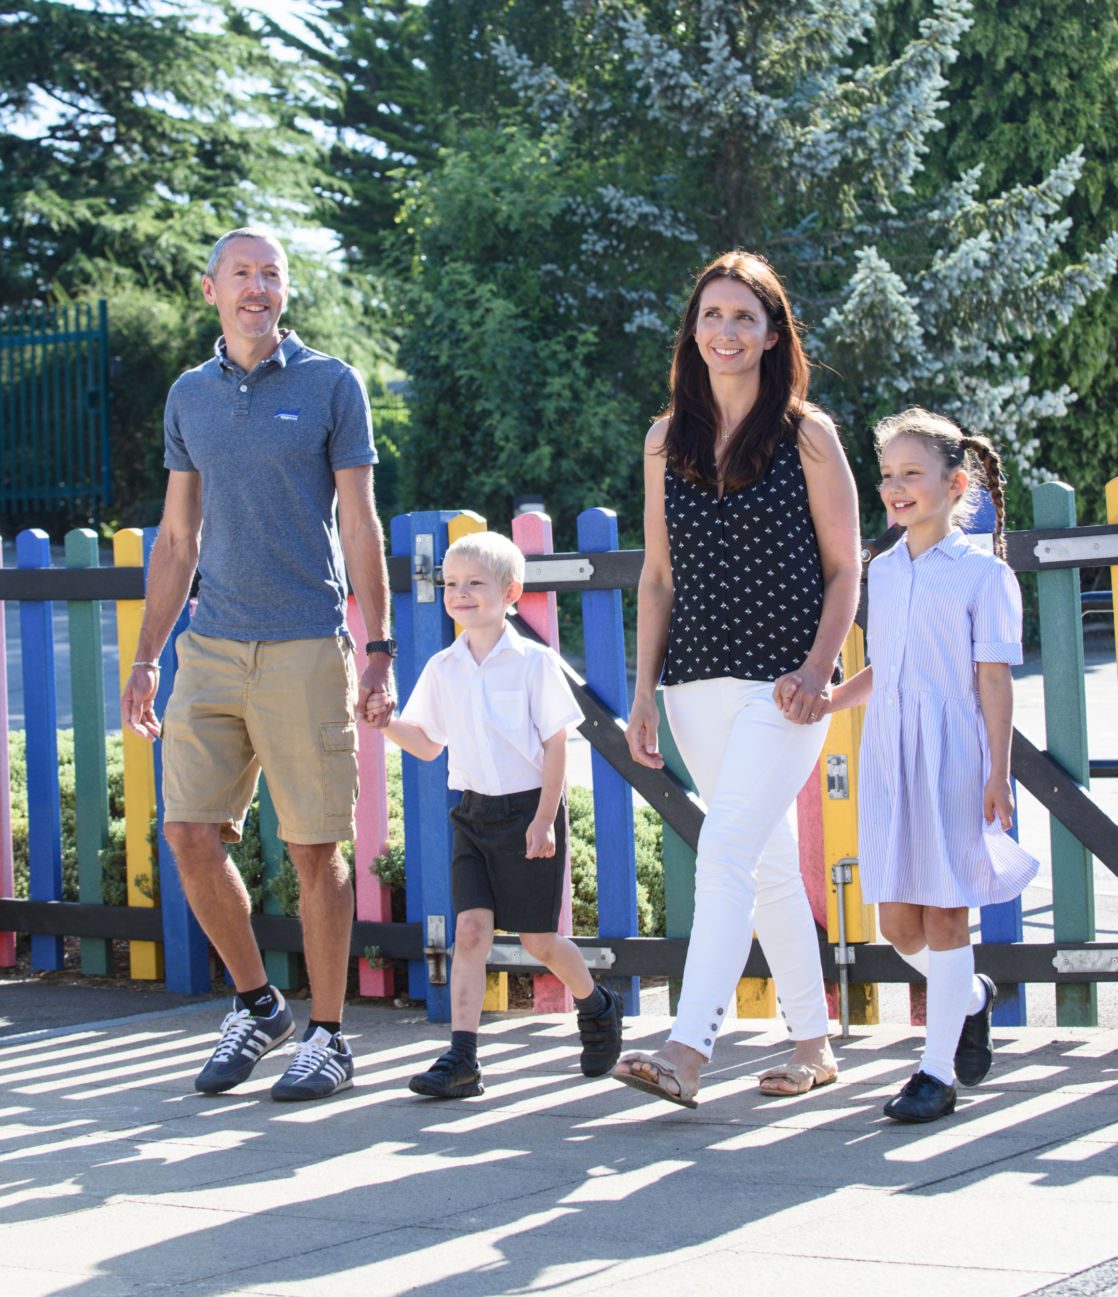 wycliffe pupils walking with their parents in the playground